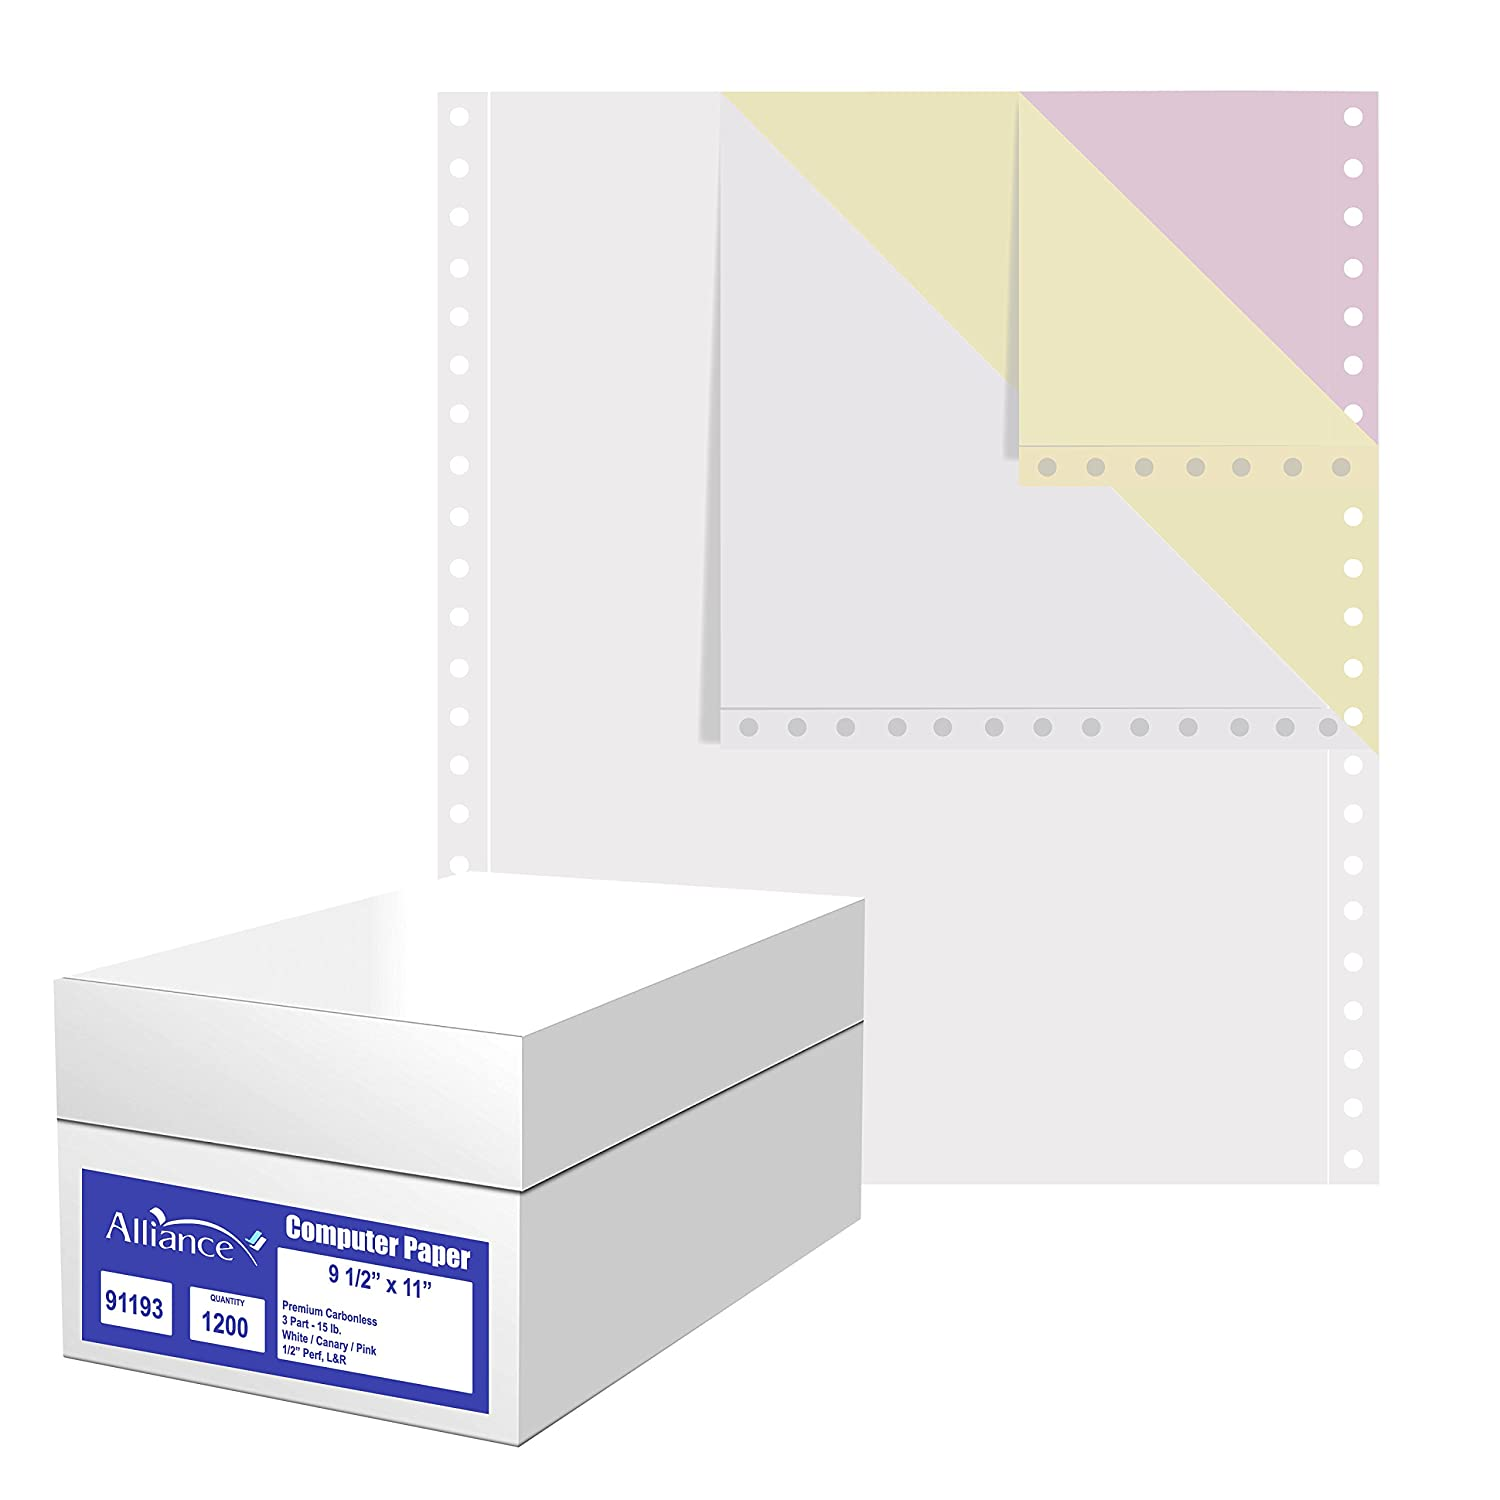 Alliance Premium Carbonless Computer Paper, 9.5 x 11, Blank Left and Right Perforated, 15 lb, 3-Part White/Canary/Pink (1,200 Sheets) - Made in The USA Impreso